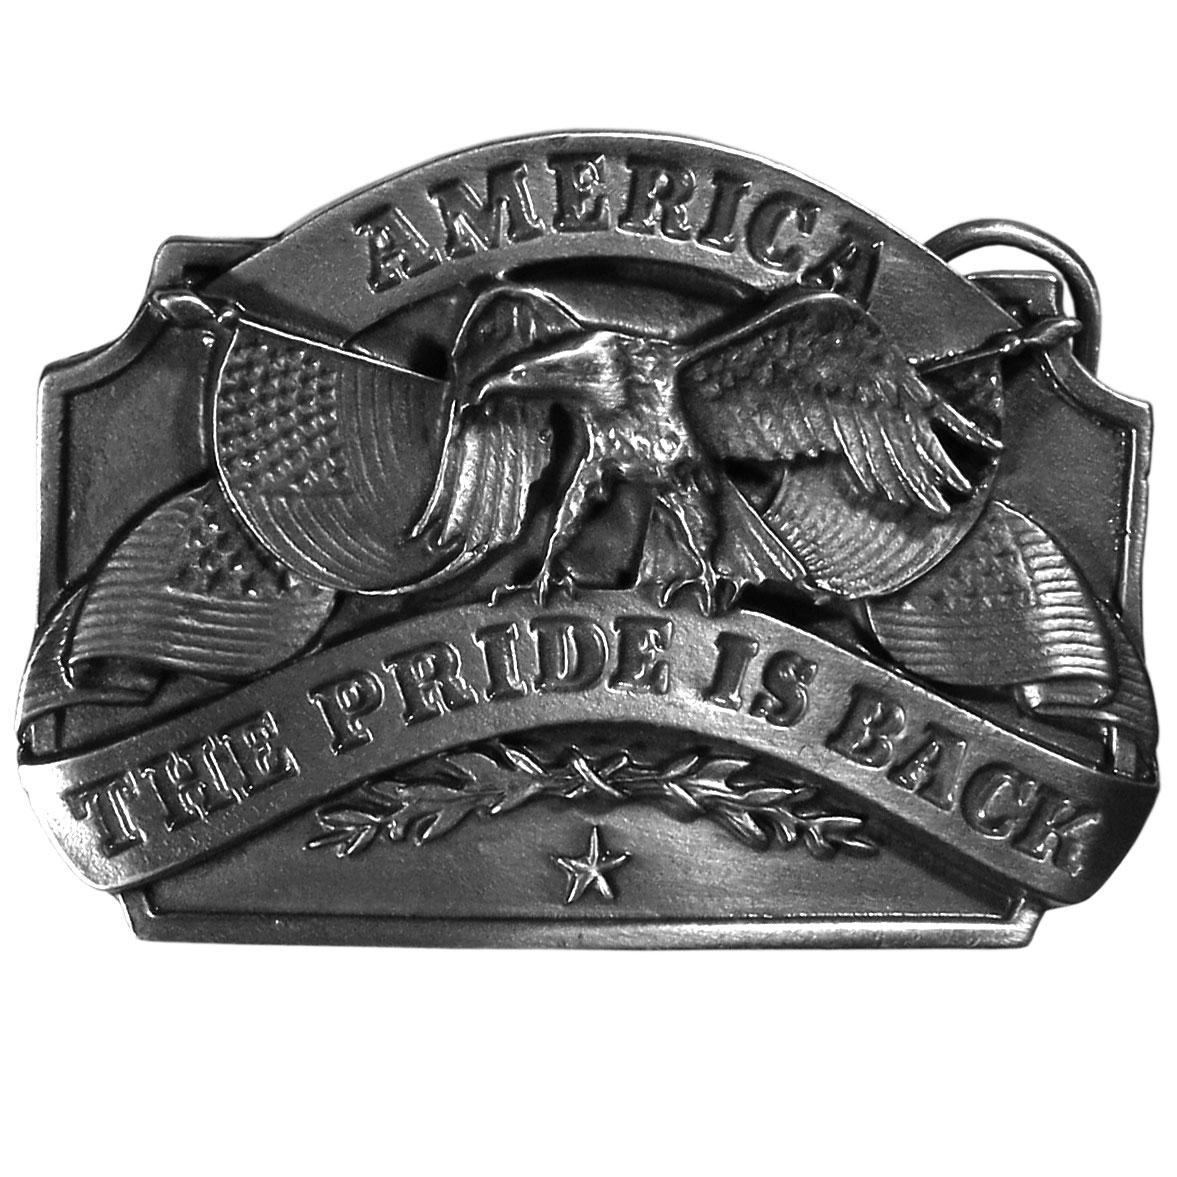 "American Pride Antiqued Belt Buckle - ""This finely sculpted and hand enameled American Pride belt buckle has """"America, the Pride is Back"""" written in bold across the center.  There are an eagle and American flags as well. Siskiyou's unique buckle designs often become collector's items and are unequaled with the best craftsmanship."""